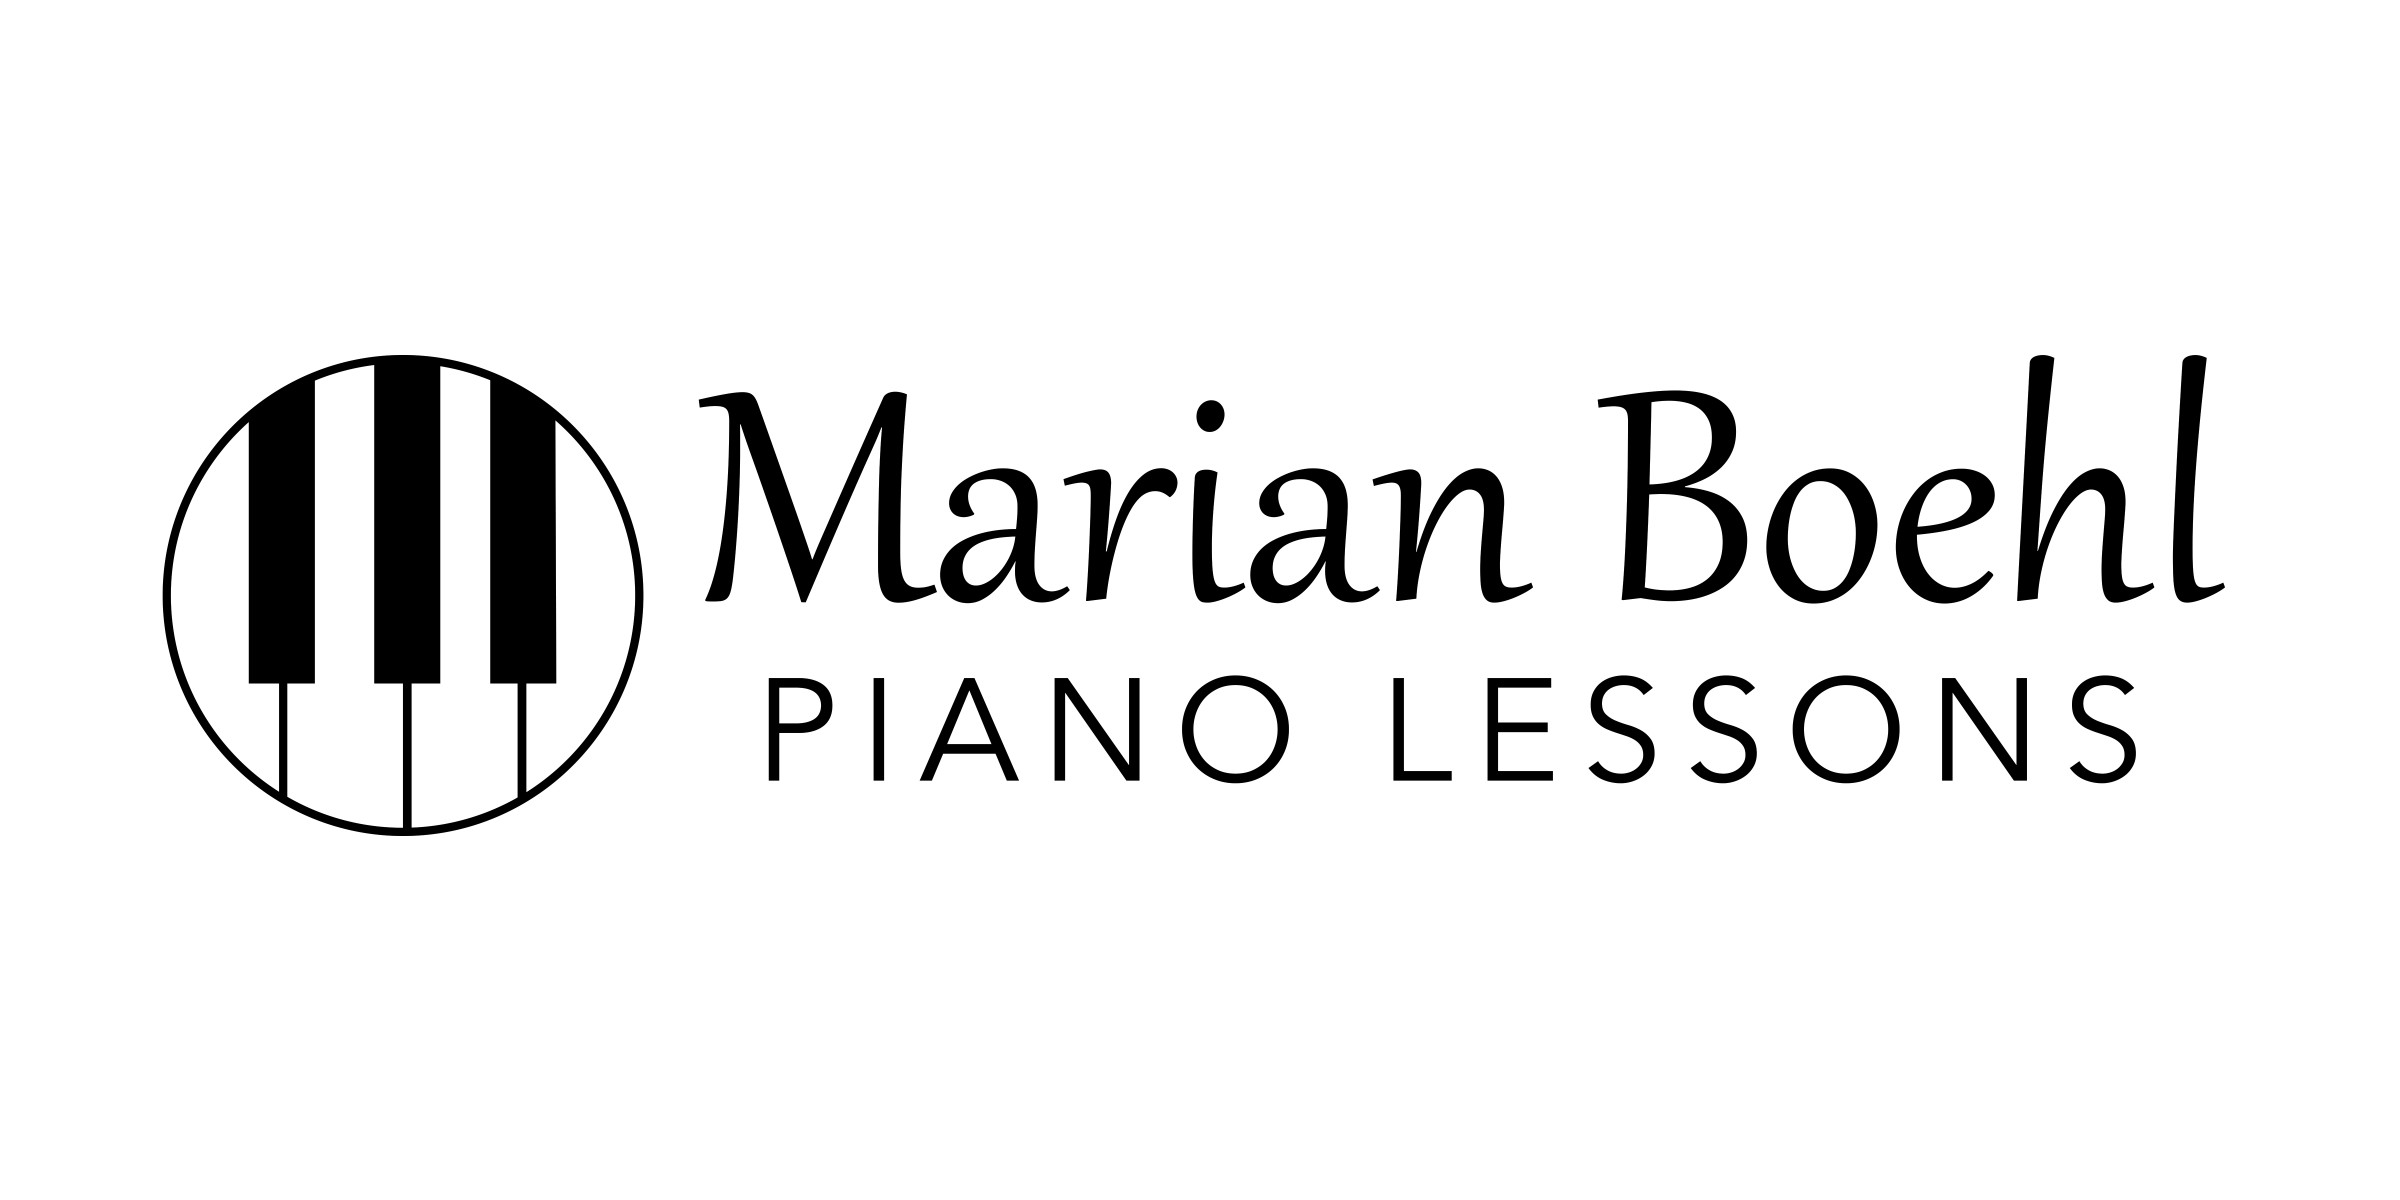 Marian Boehl, piano lessons